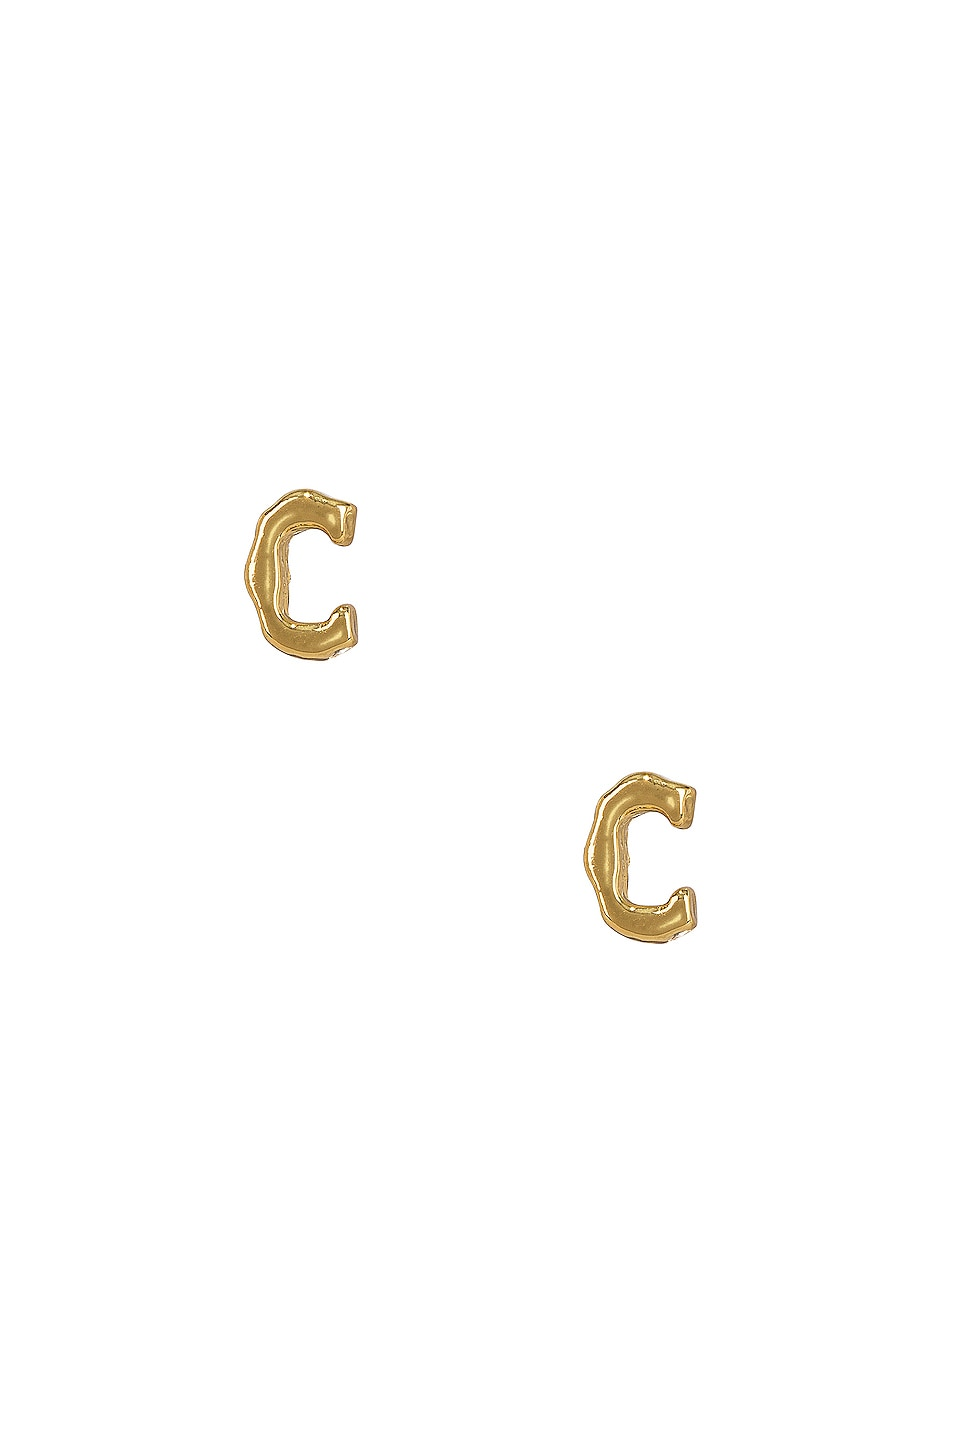 C Initial Stud Earrings